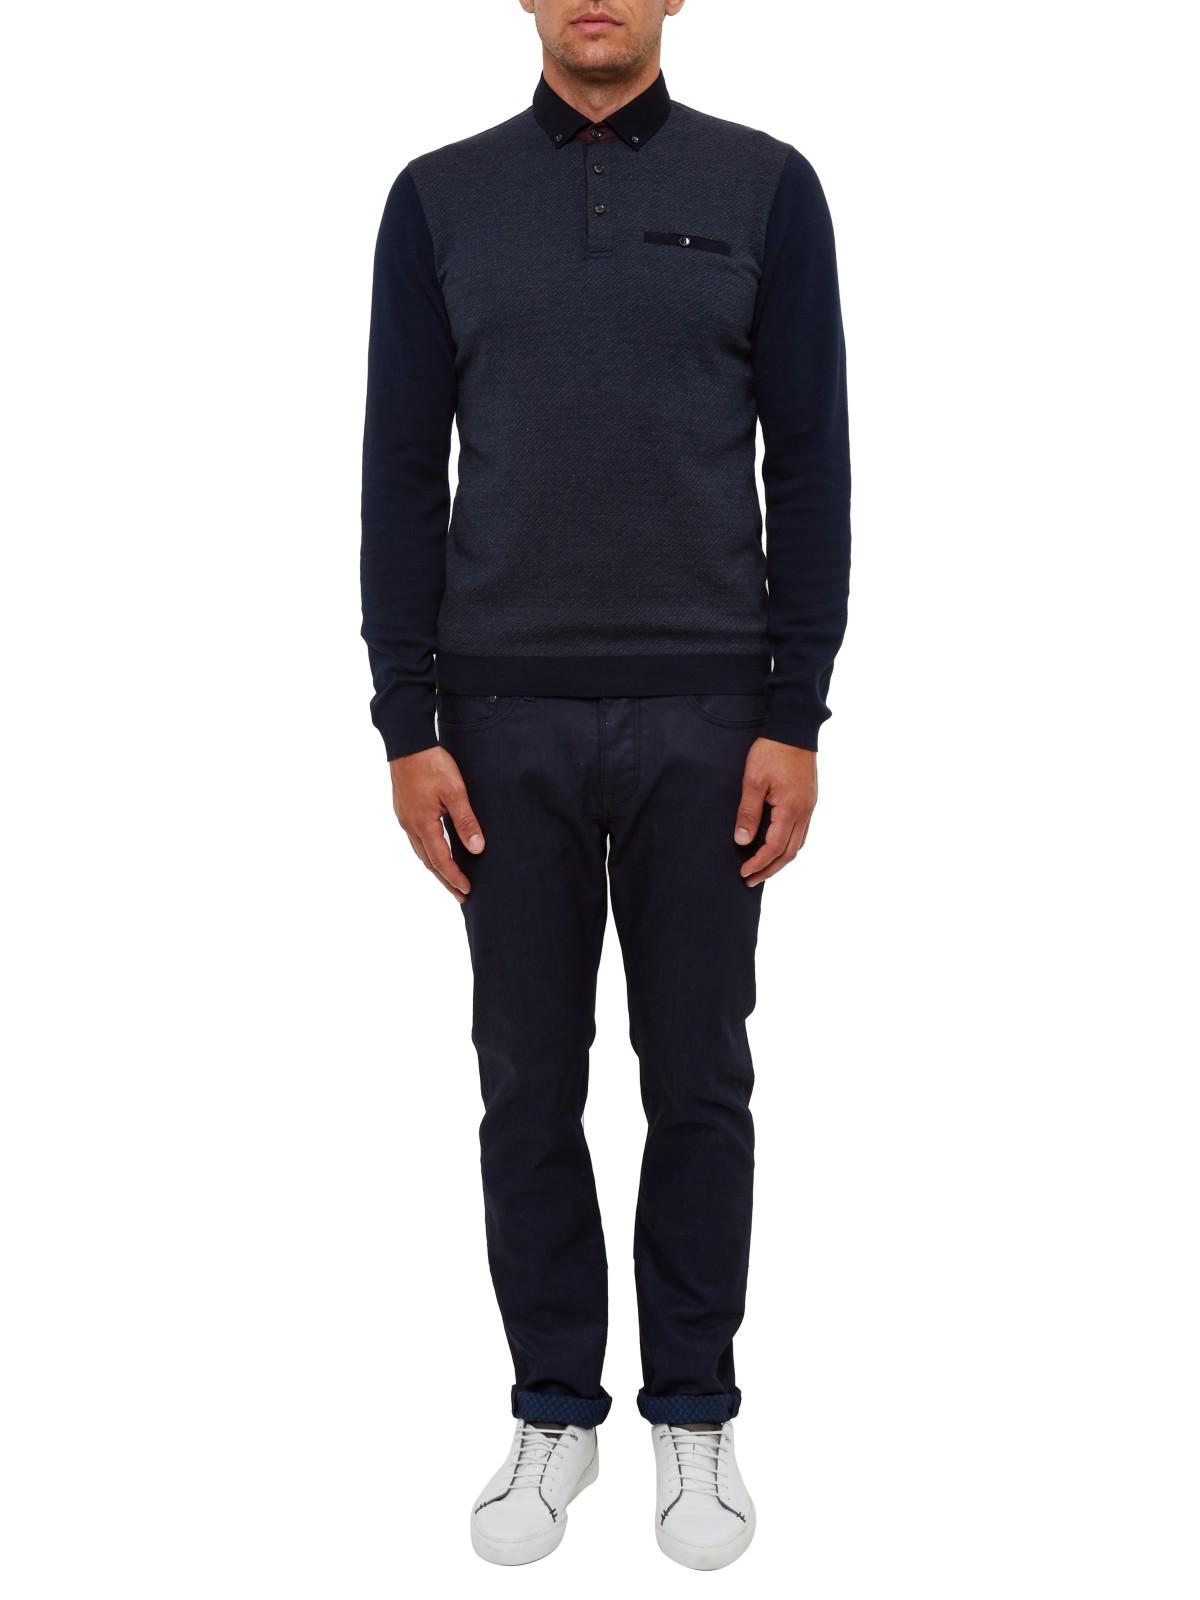 Ted Baker Cotton Rick Knitted Polo Shirt in Navy (Blue) for Men